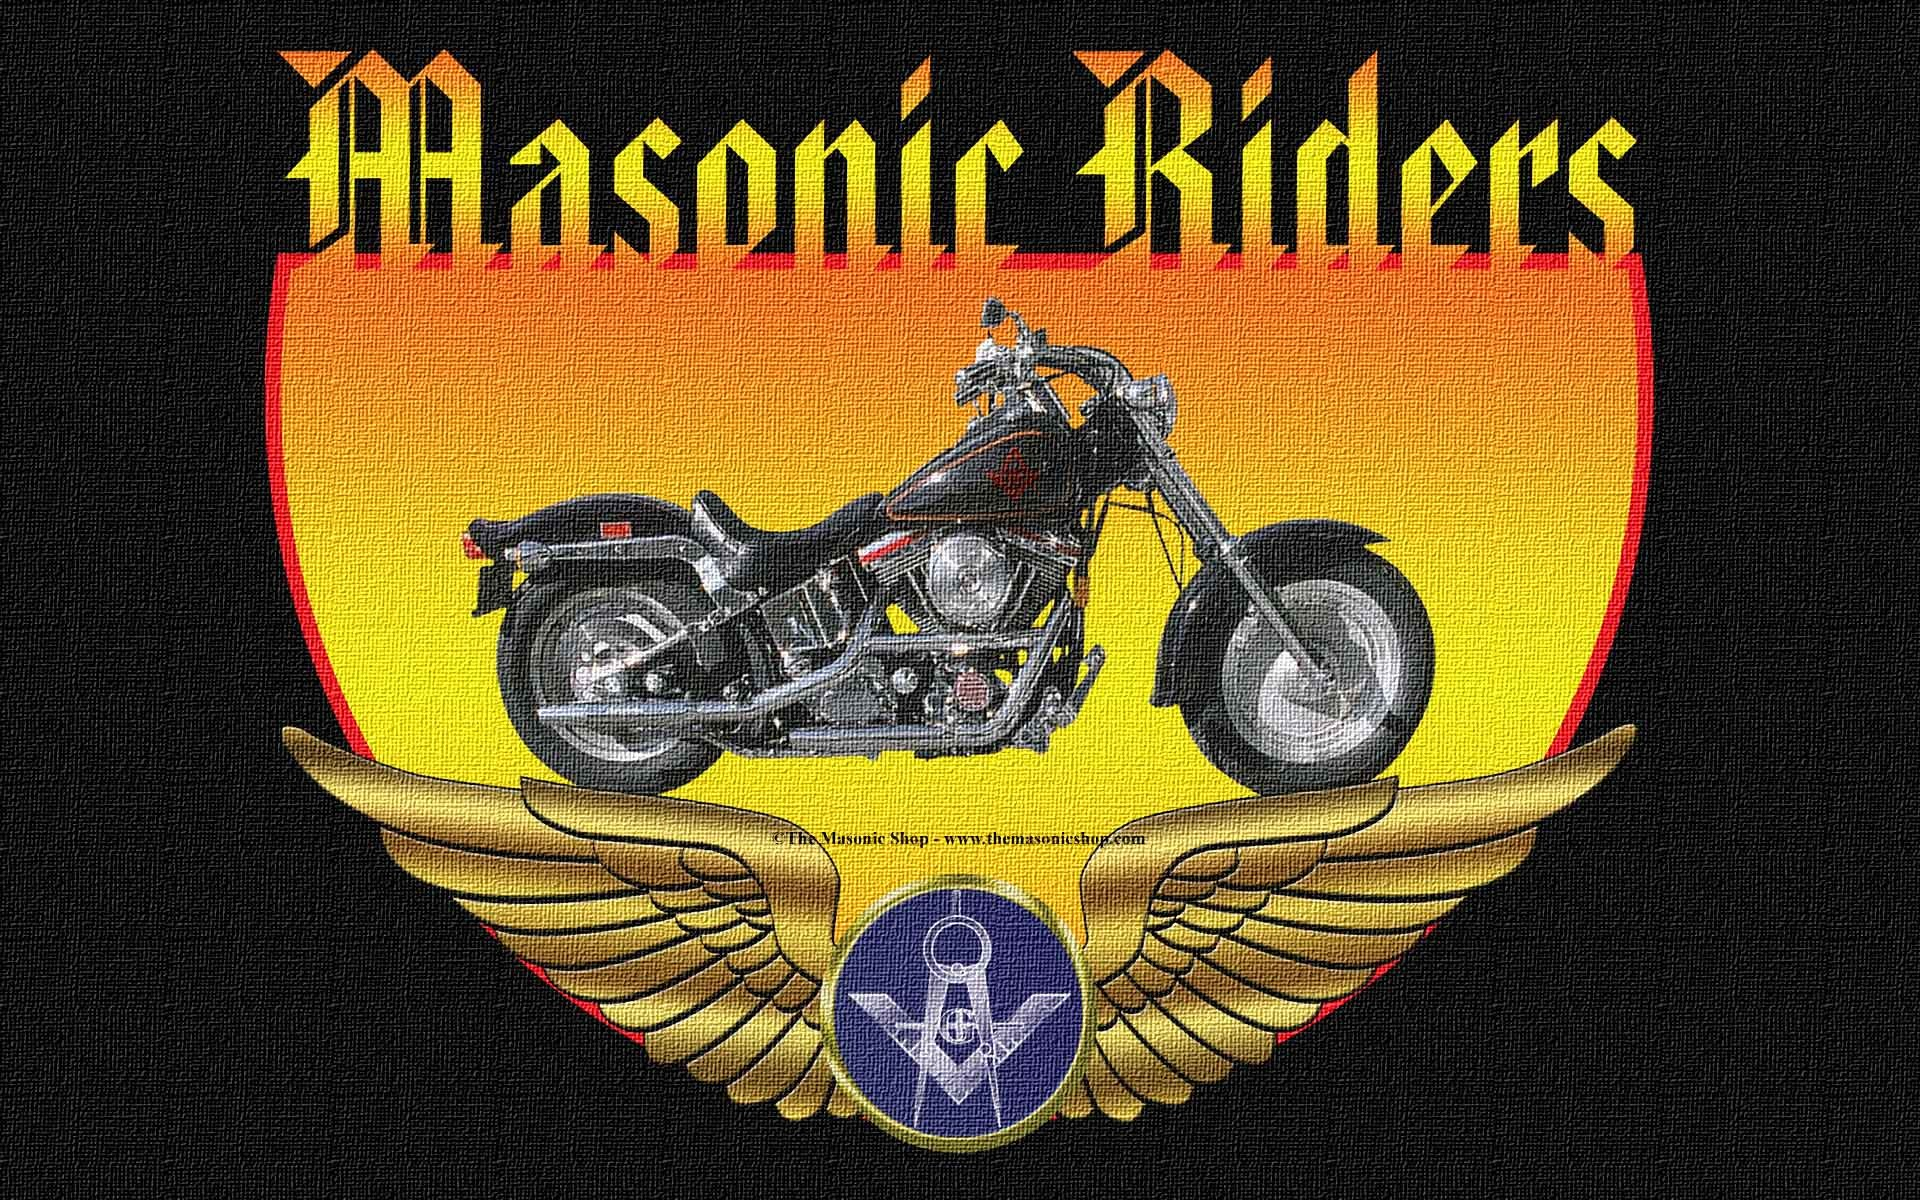 1920x1200  · Masonic Motorcycle Riders